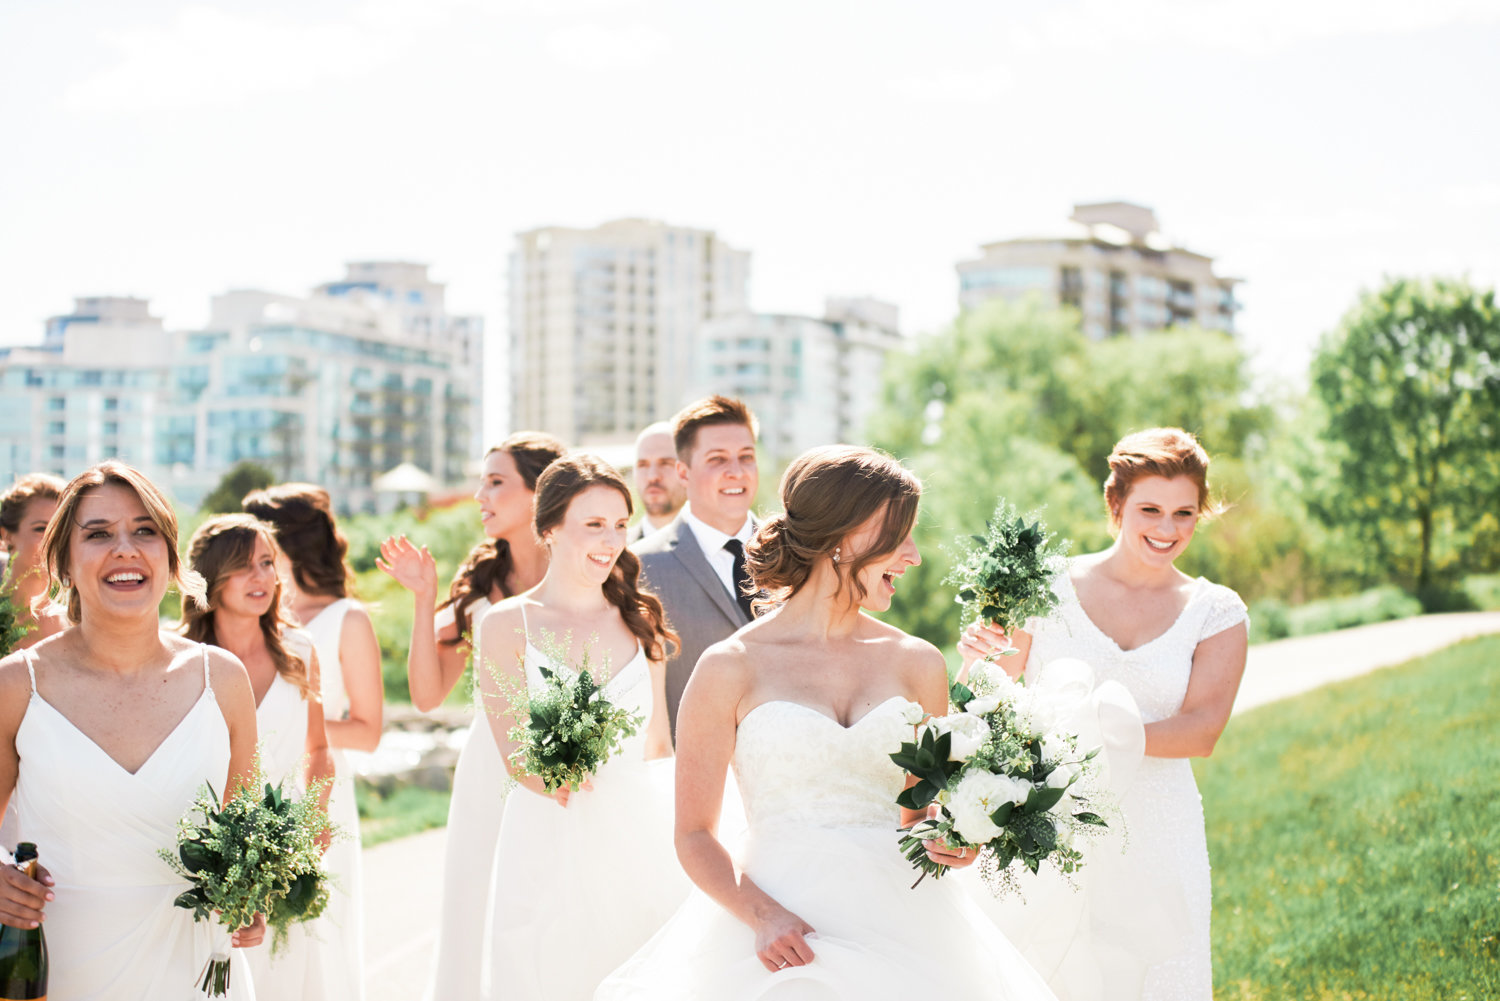 Bride and bridesmaids all in white dresses